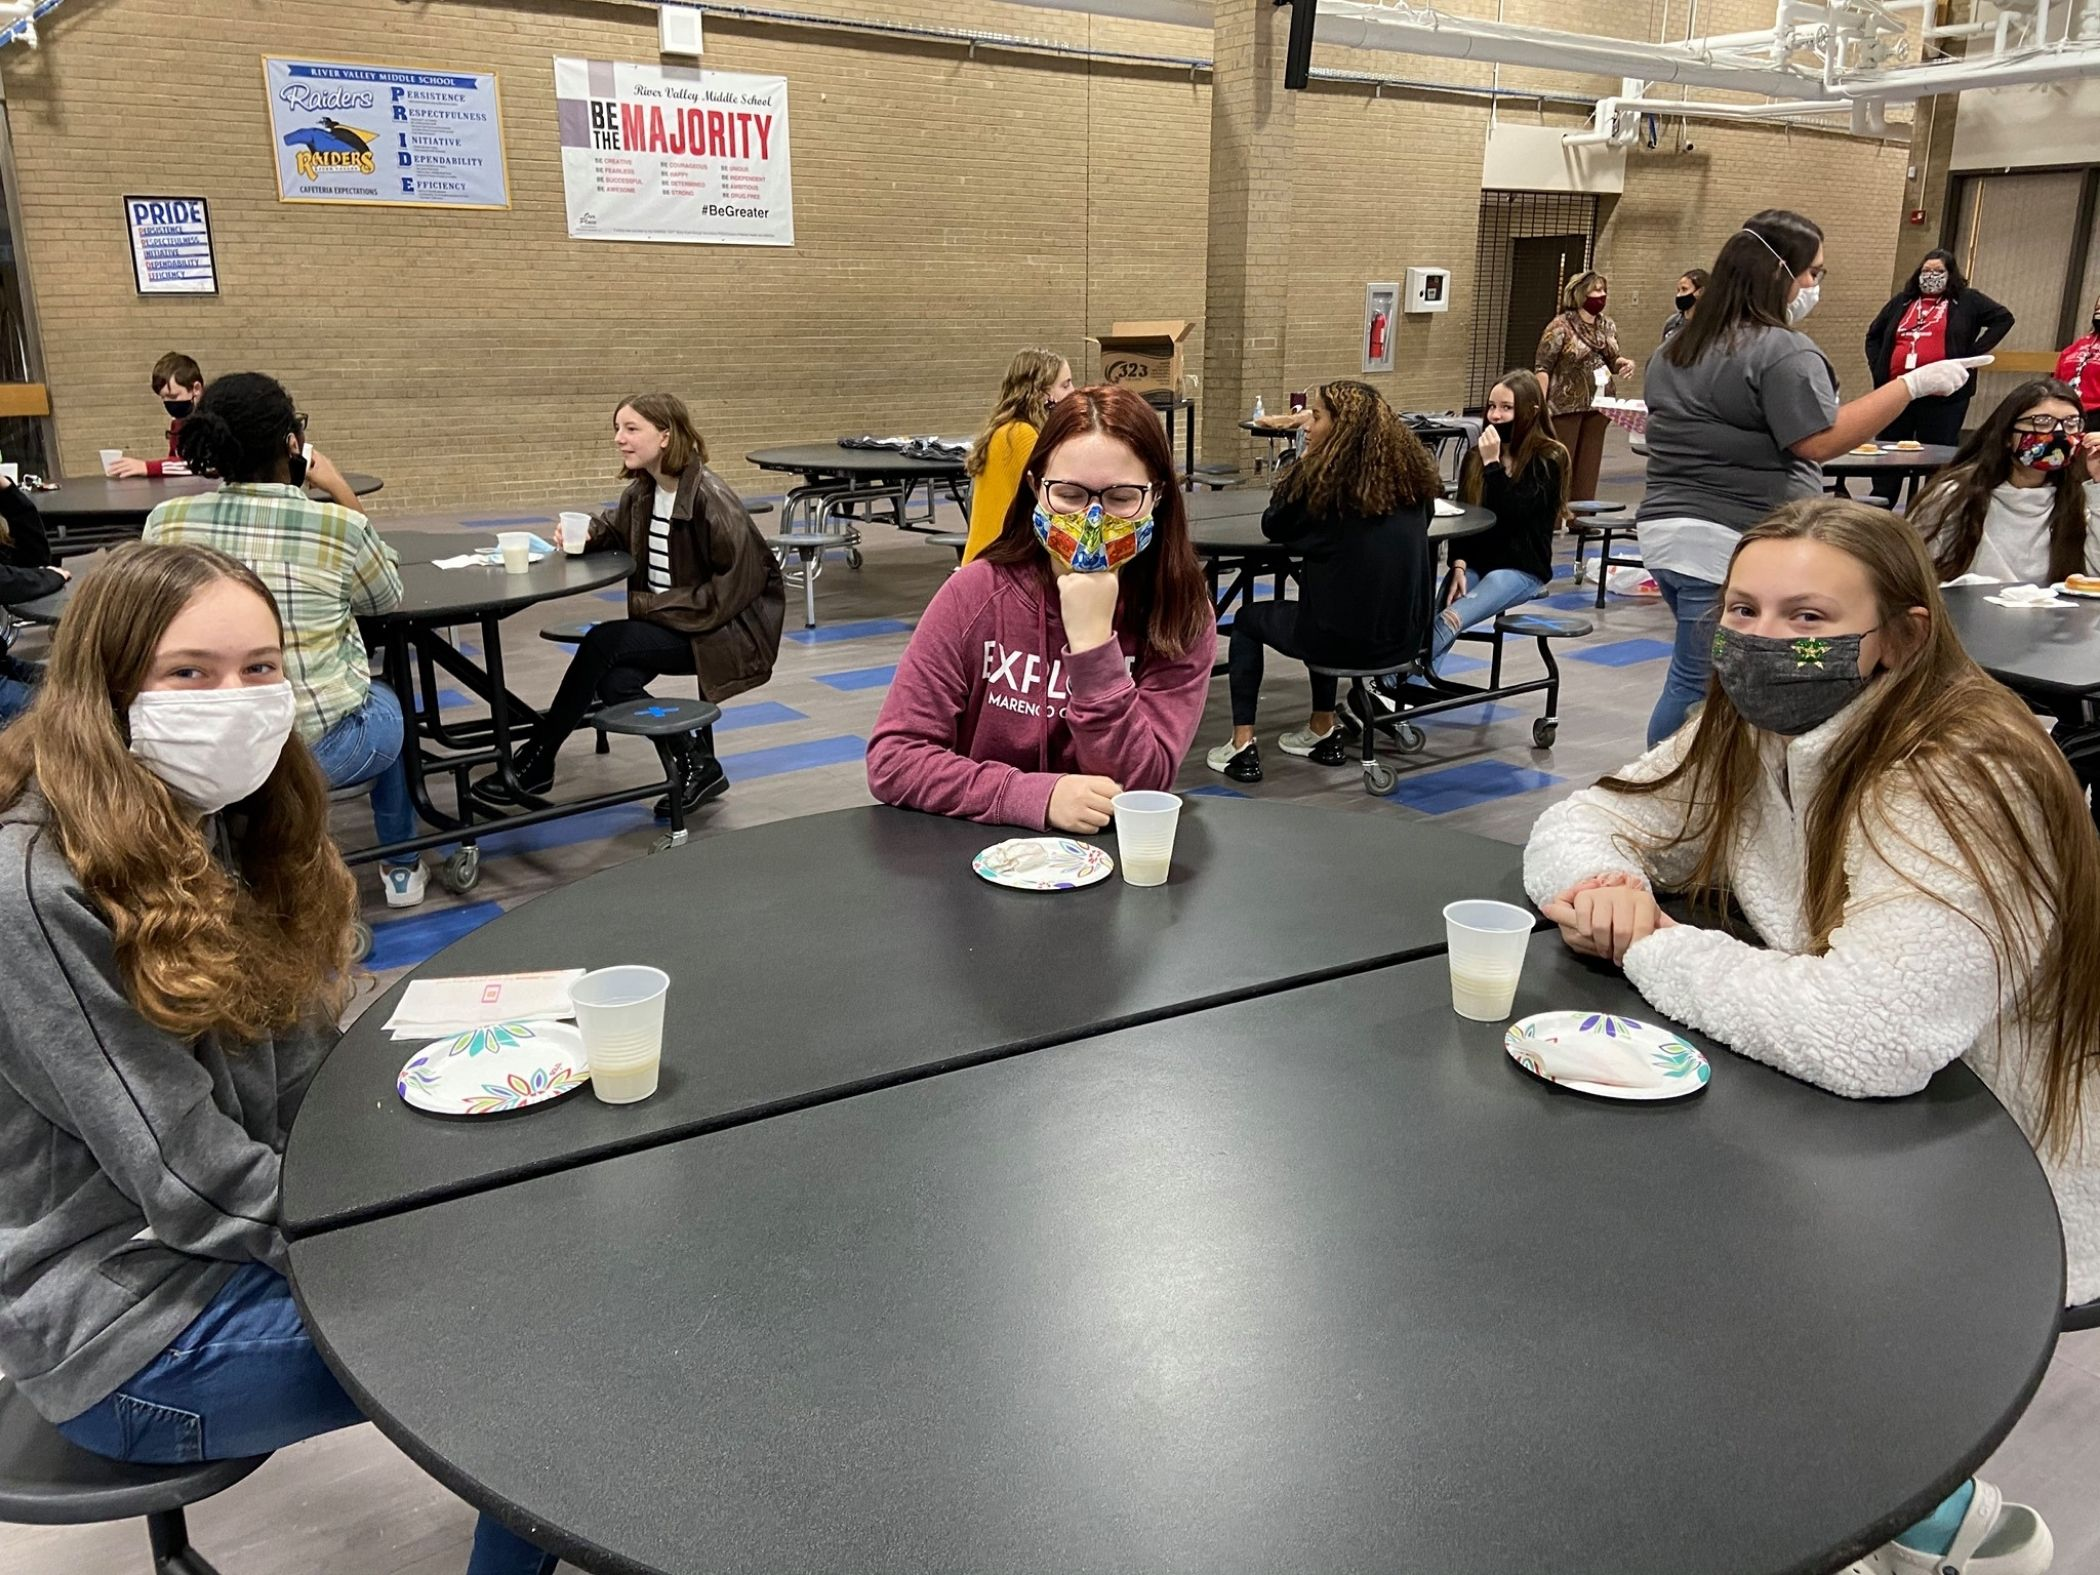 Students eating snack